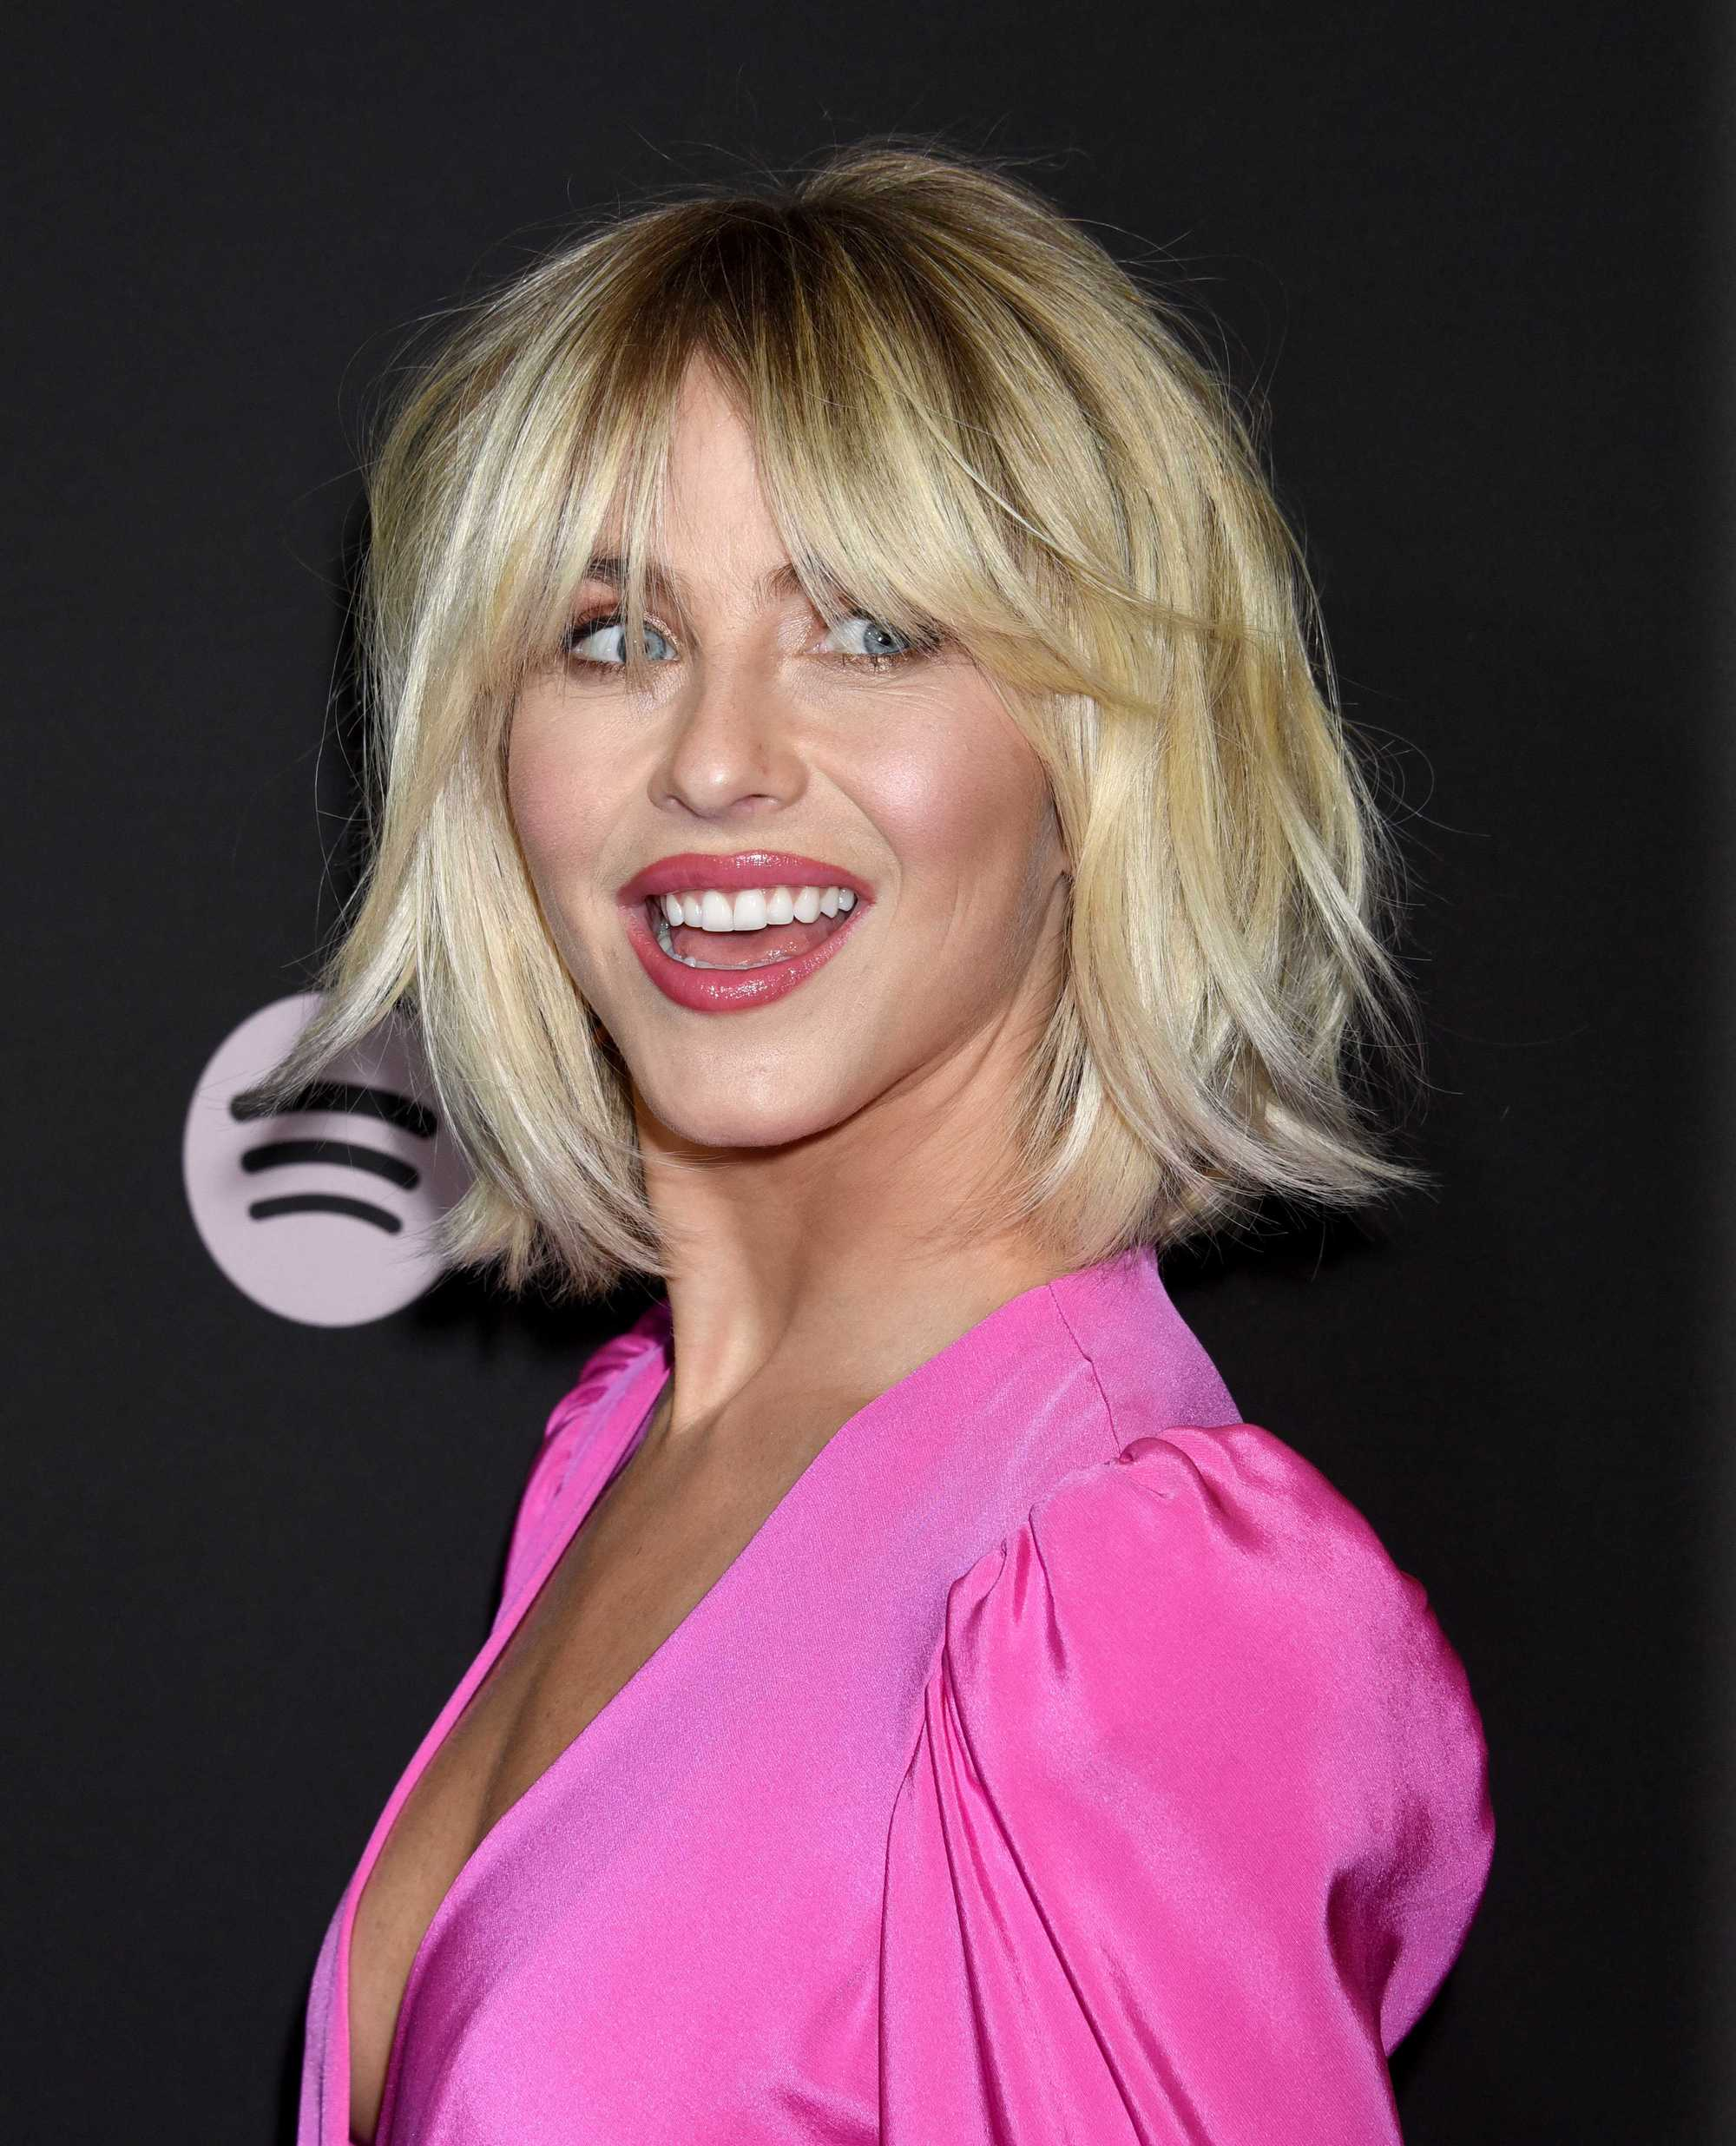 Thick hairstyles: Julianne Hough with short shaggy thick bob, wearing bright pink top and posing